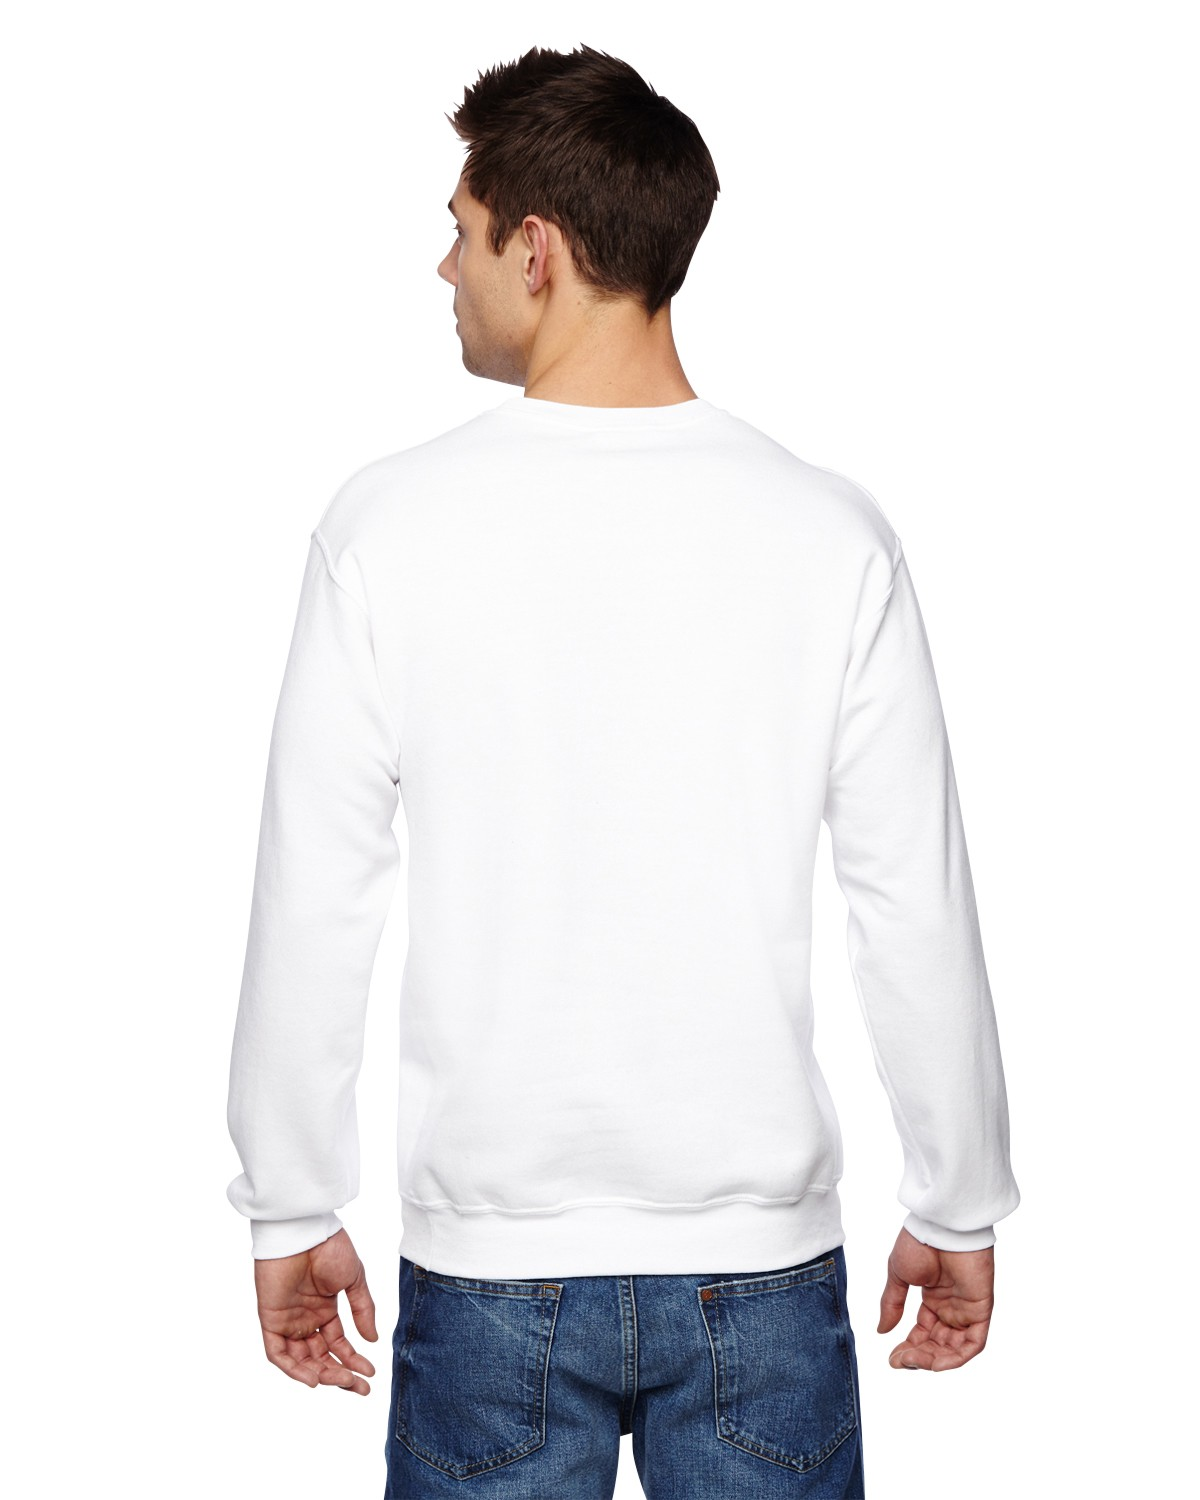 SF72R Fruit of the Loom WHITE